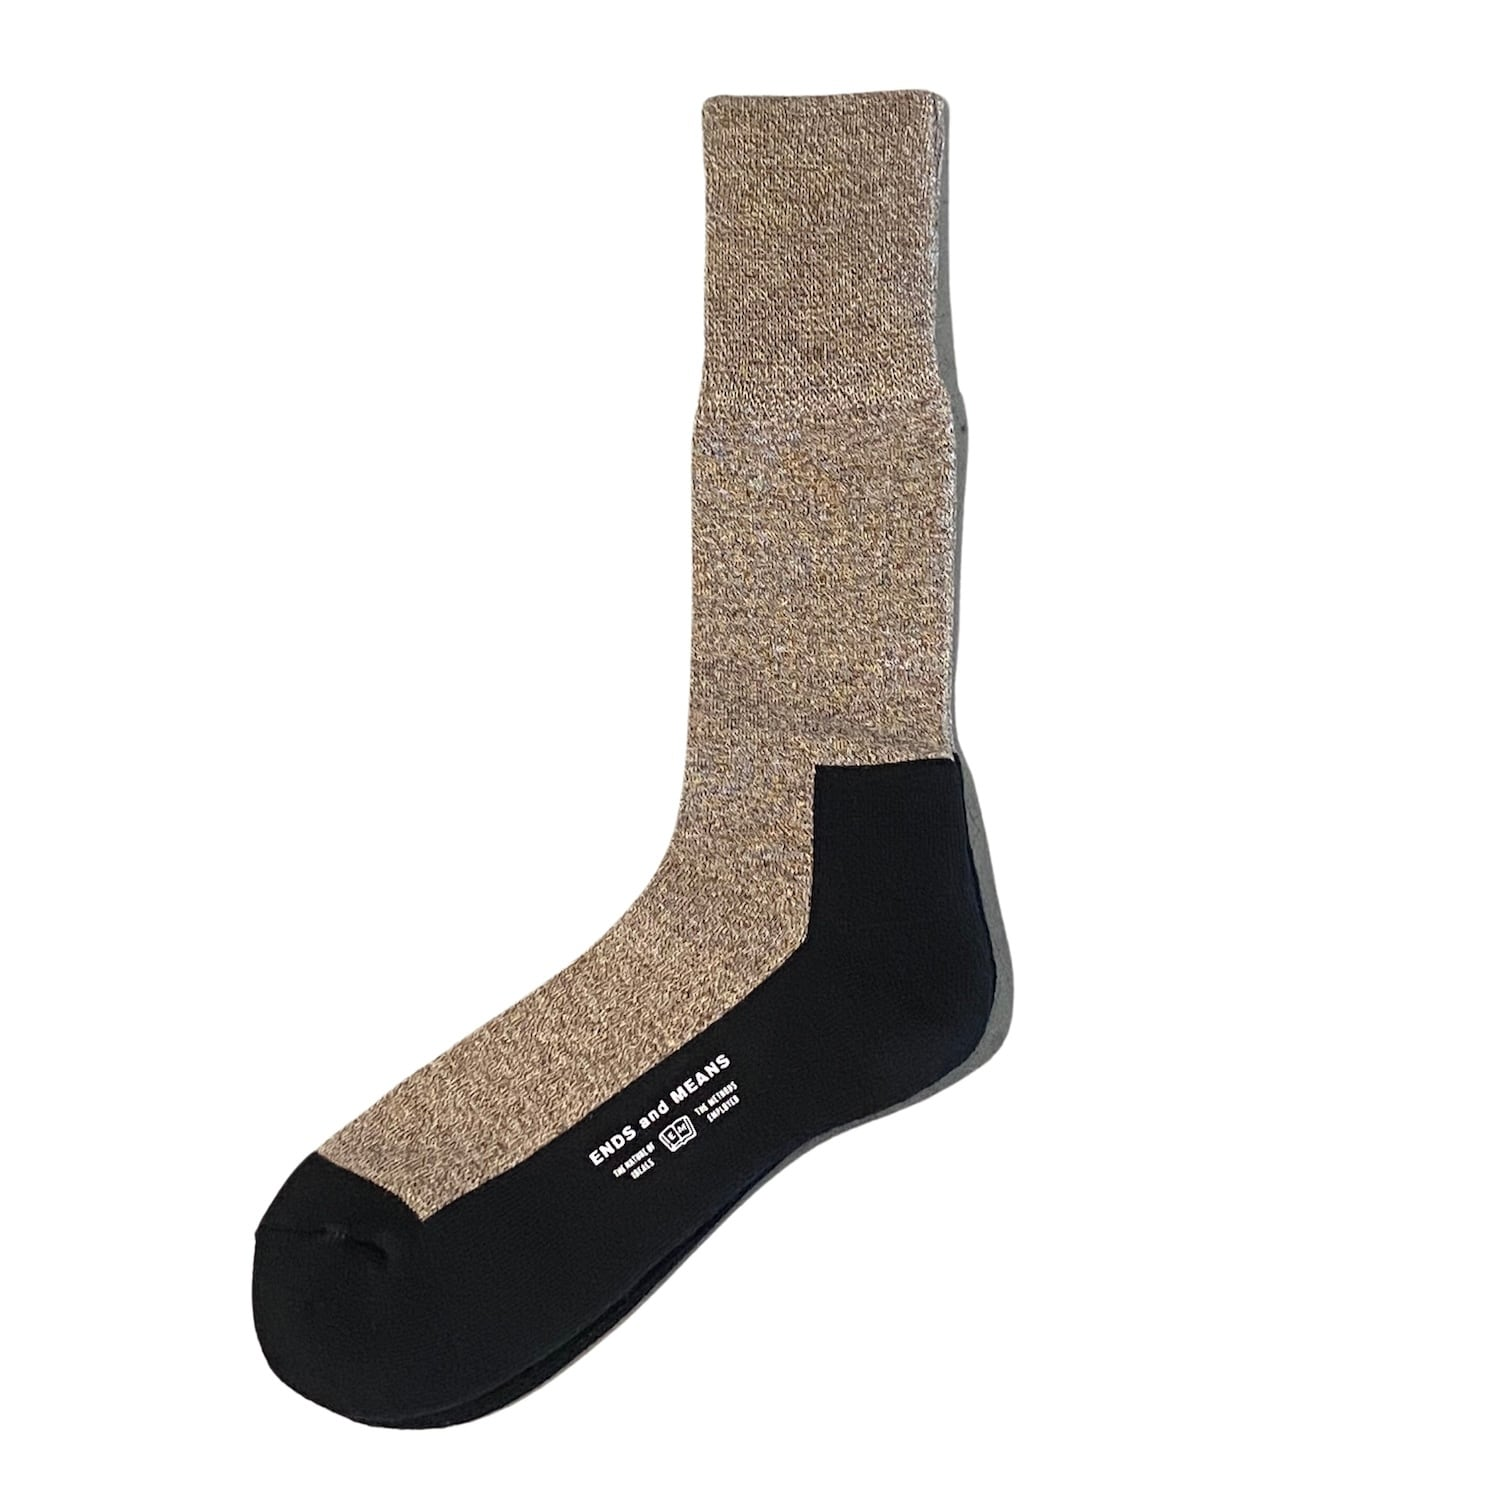 ENDS and MEANS/Merino Wool Socks